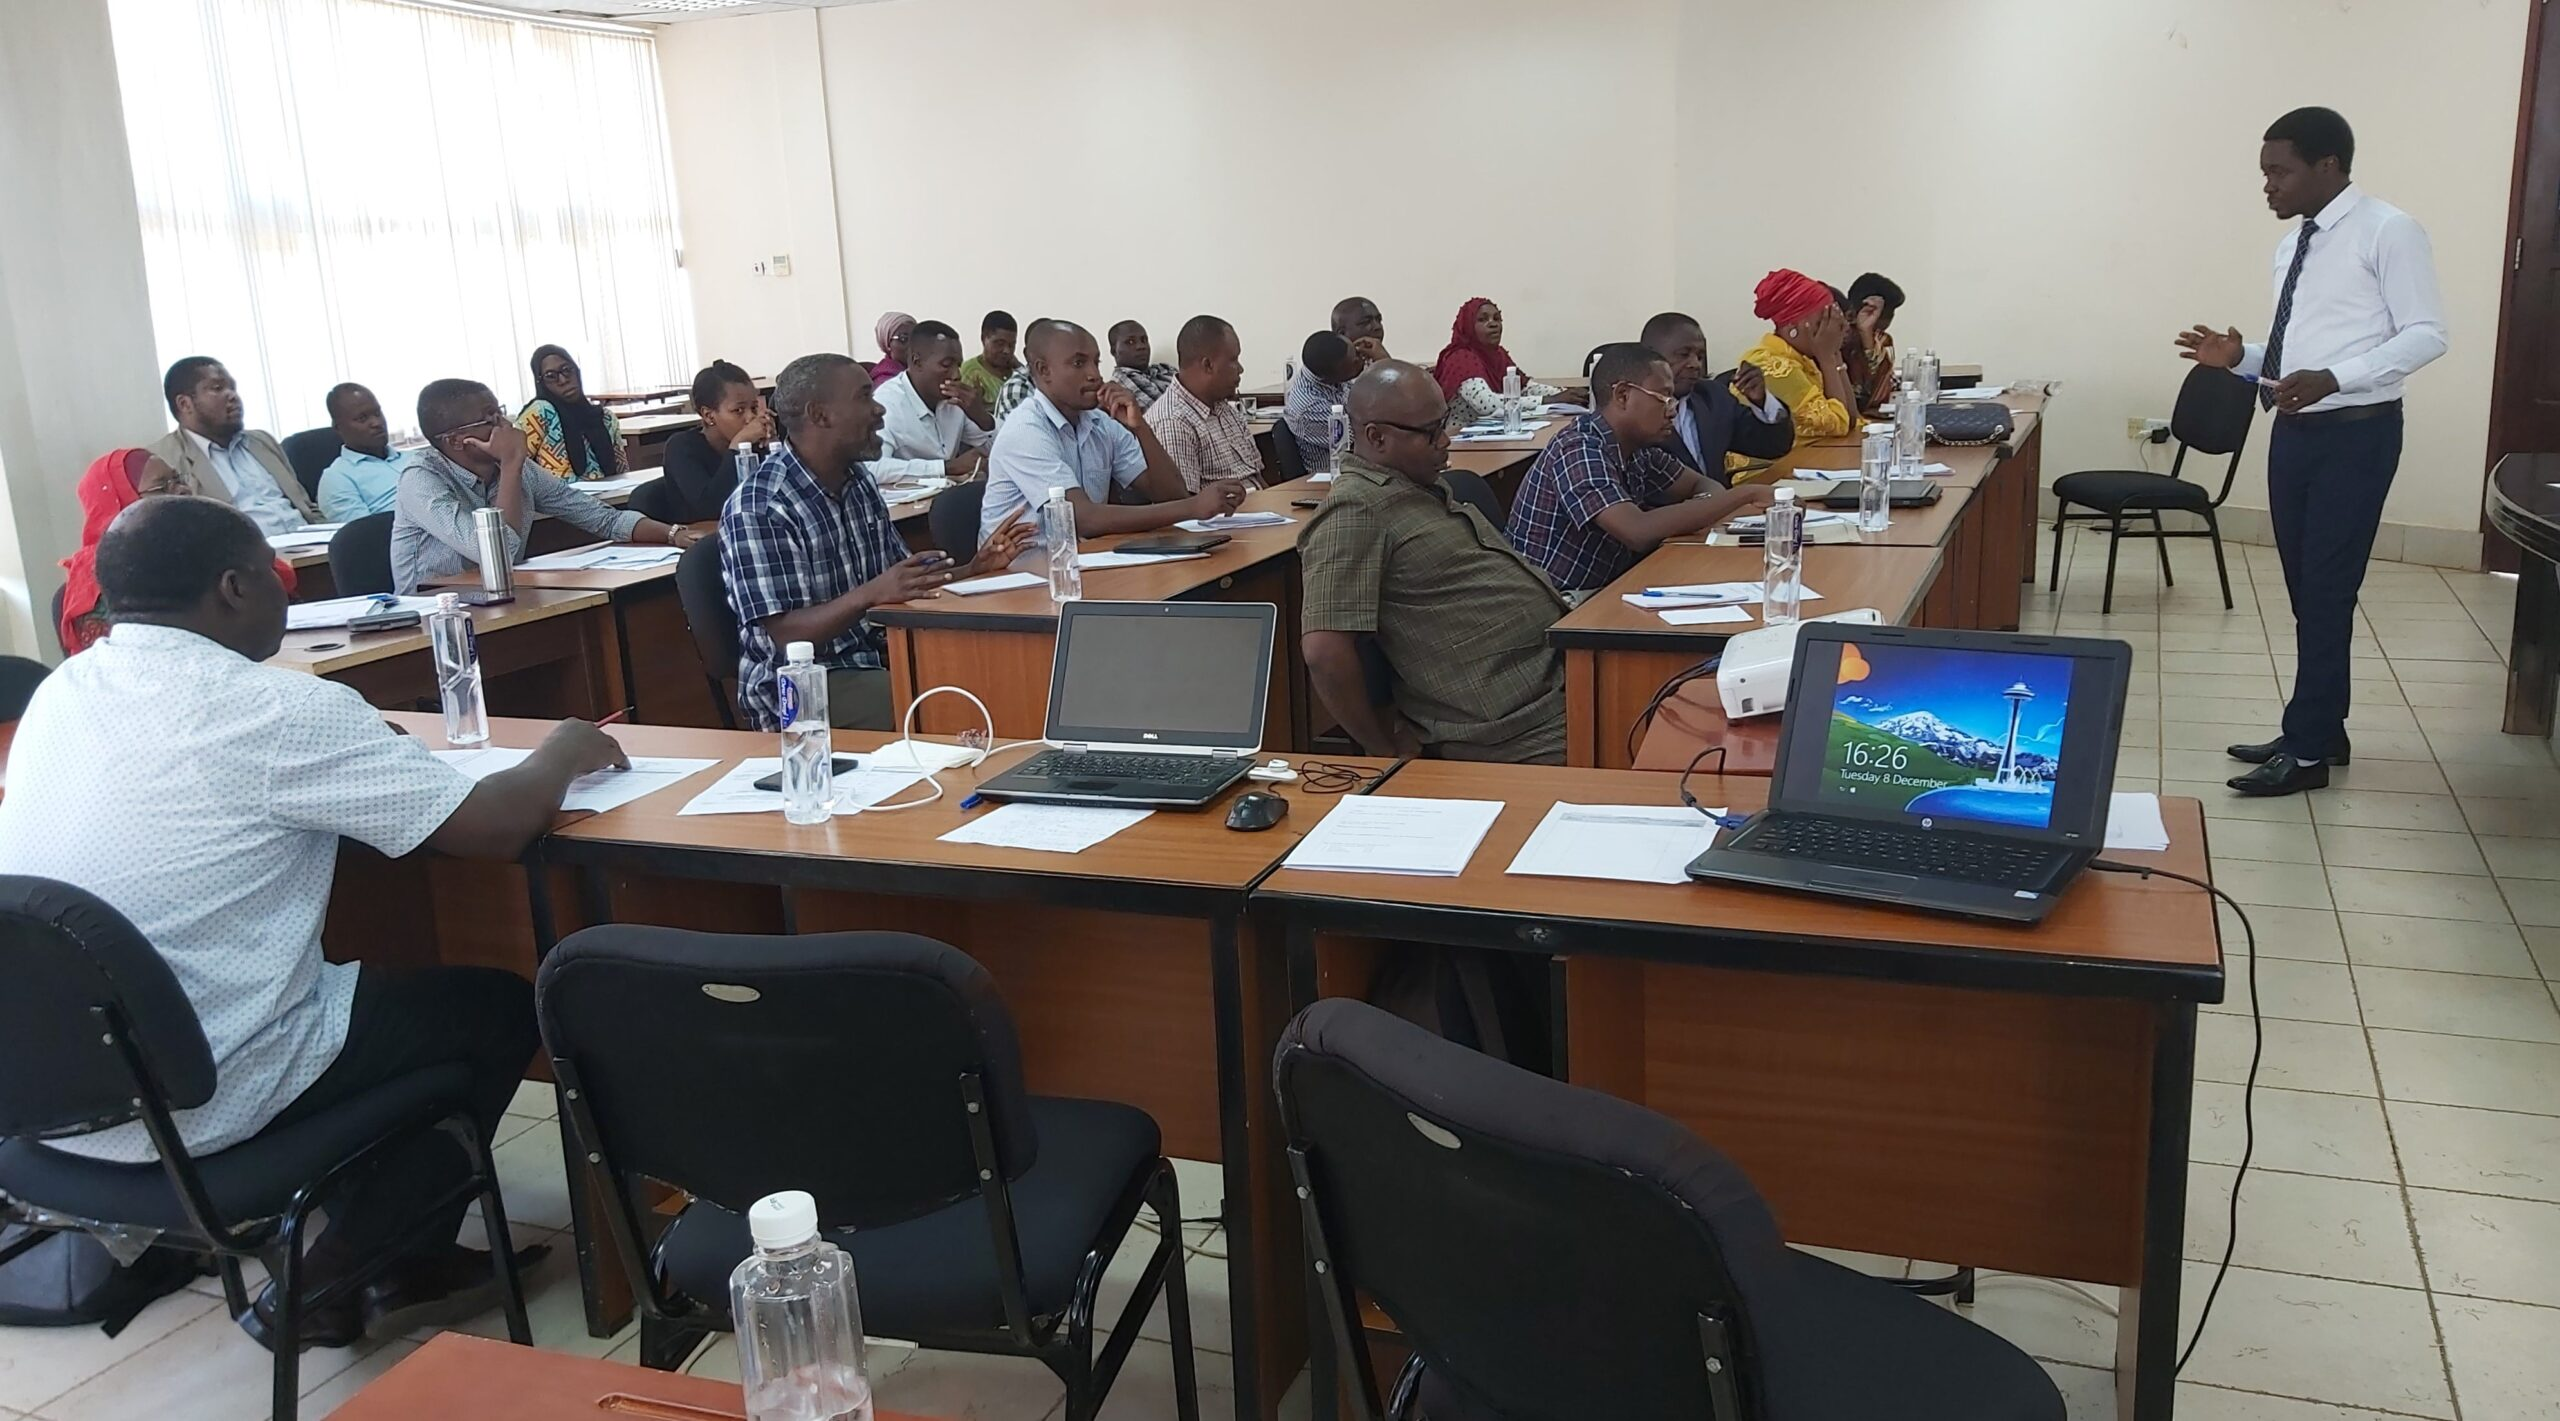 A picture of a capacity building course run by a facilitator from TAPBDS.